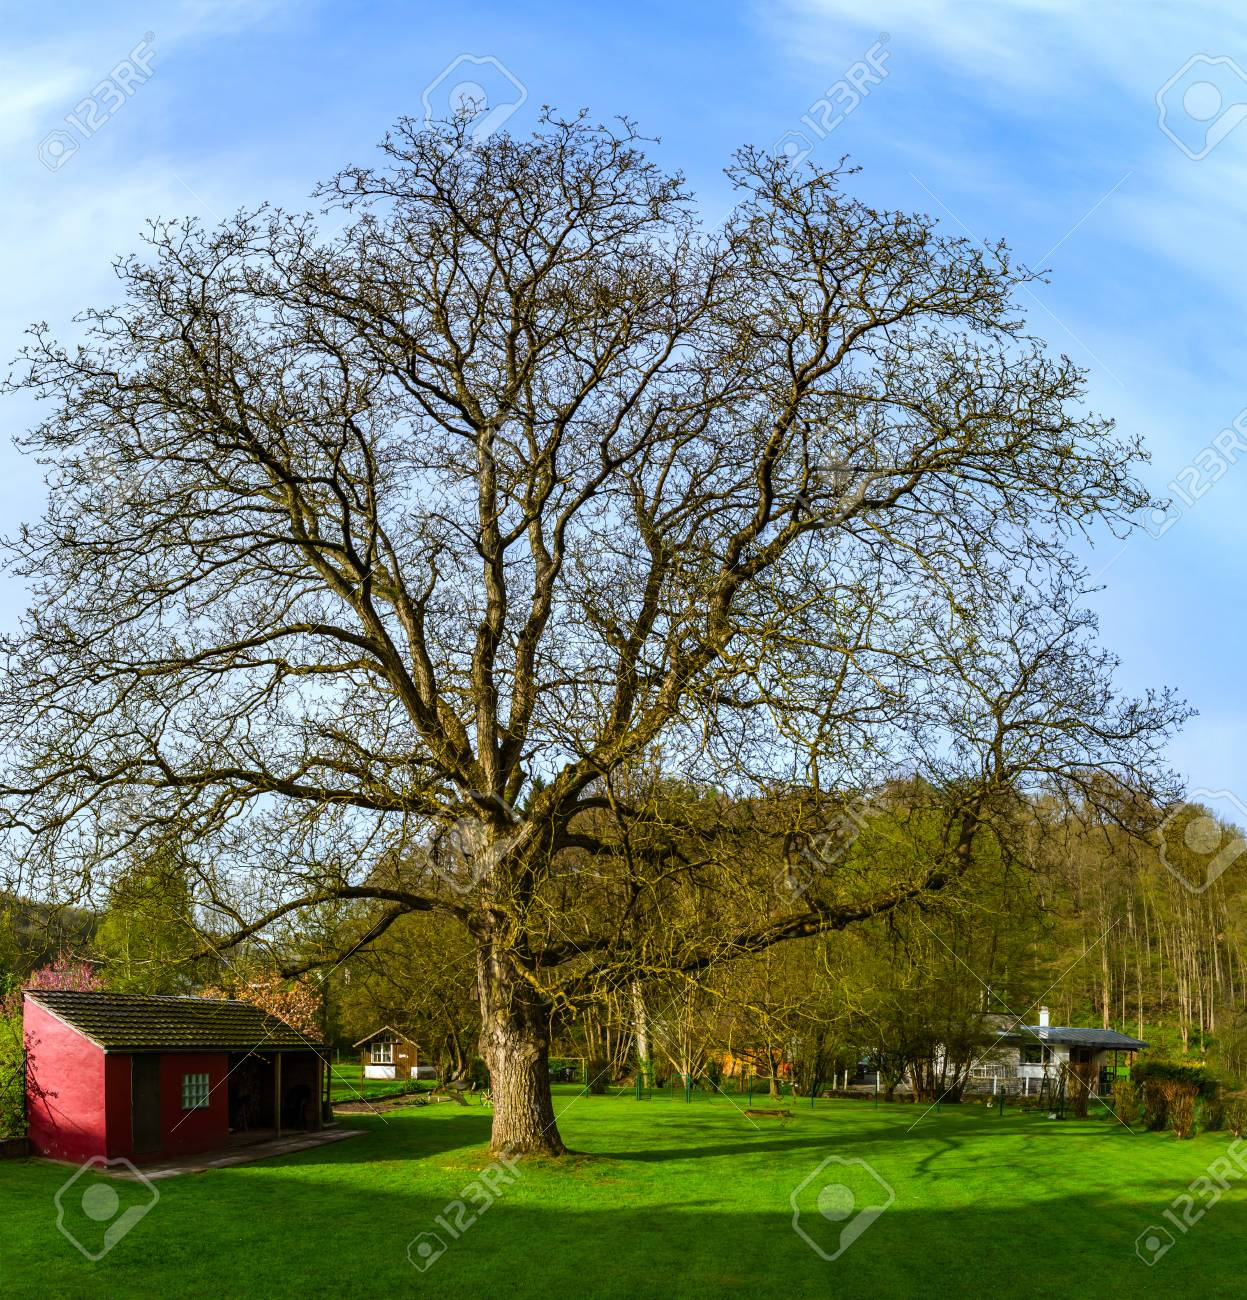 Great walnut-tree early spring day, sunny and warm, Belgium